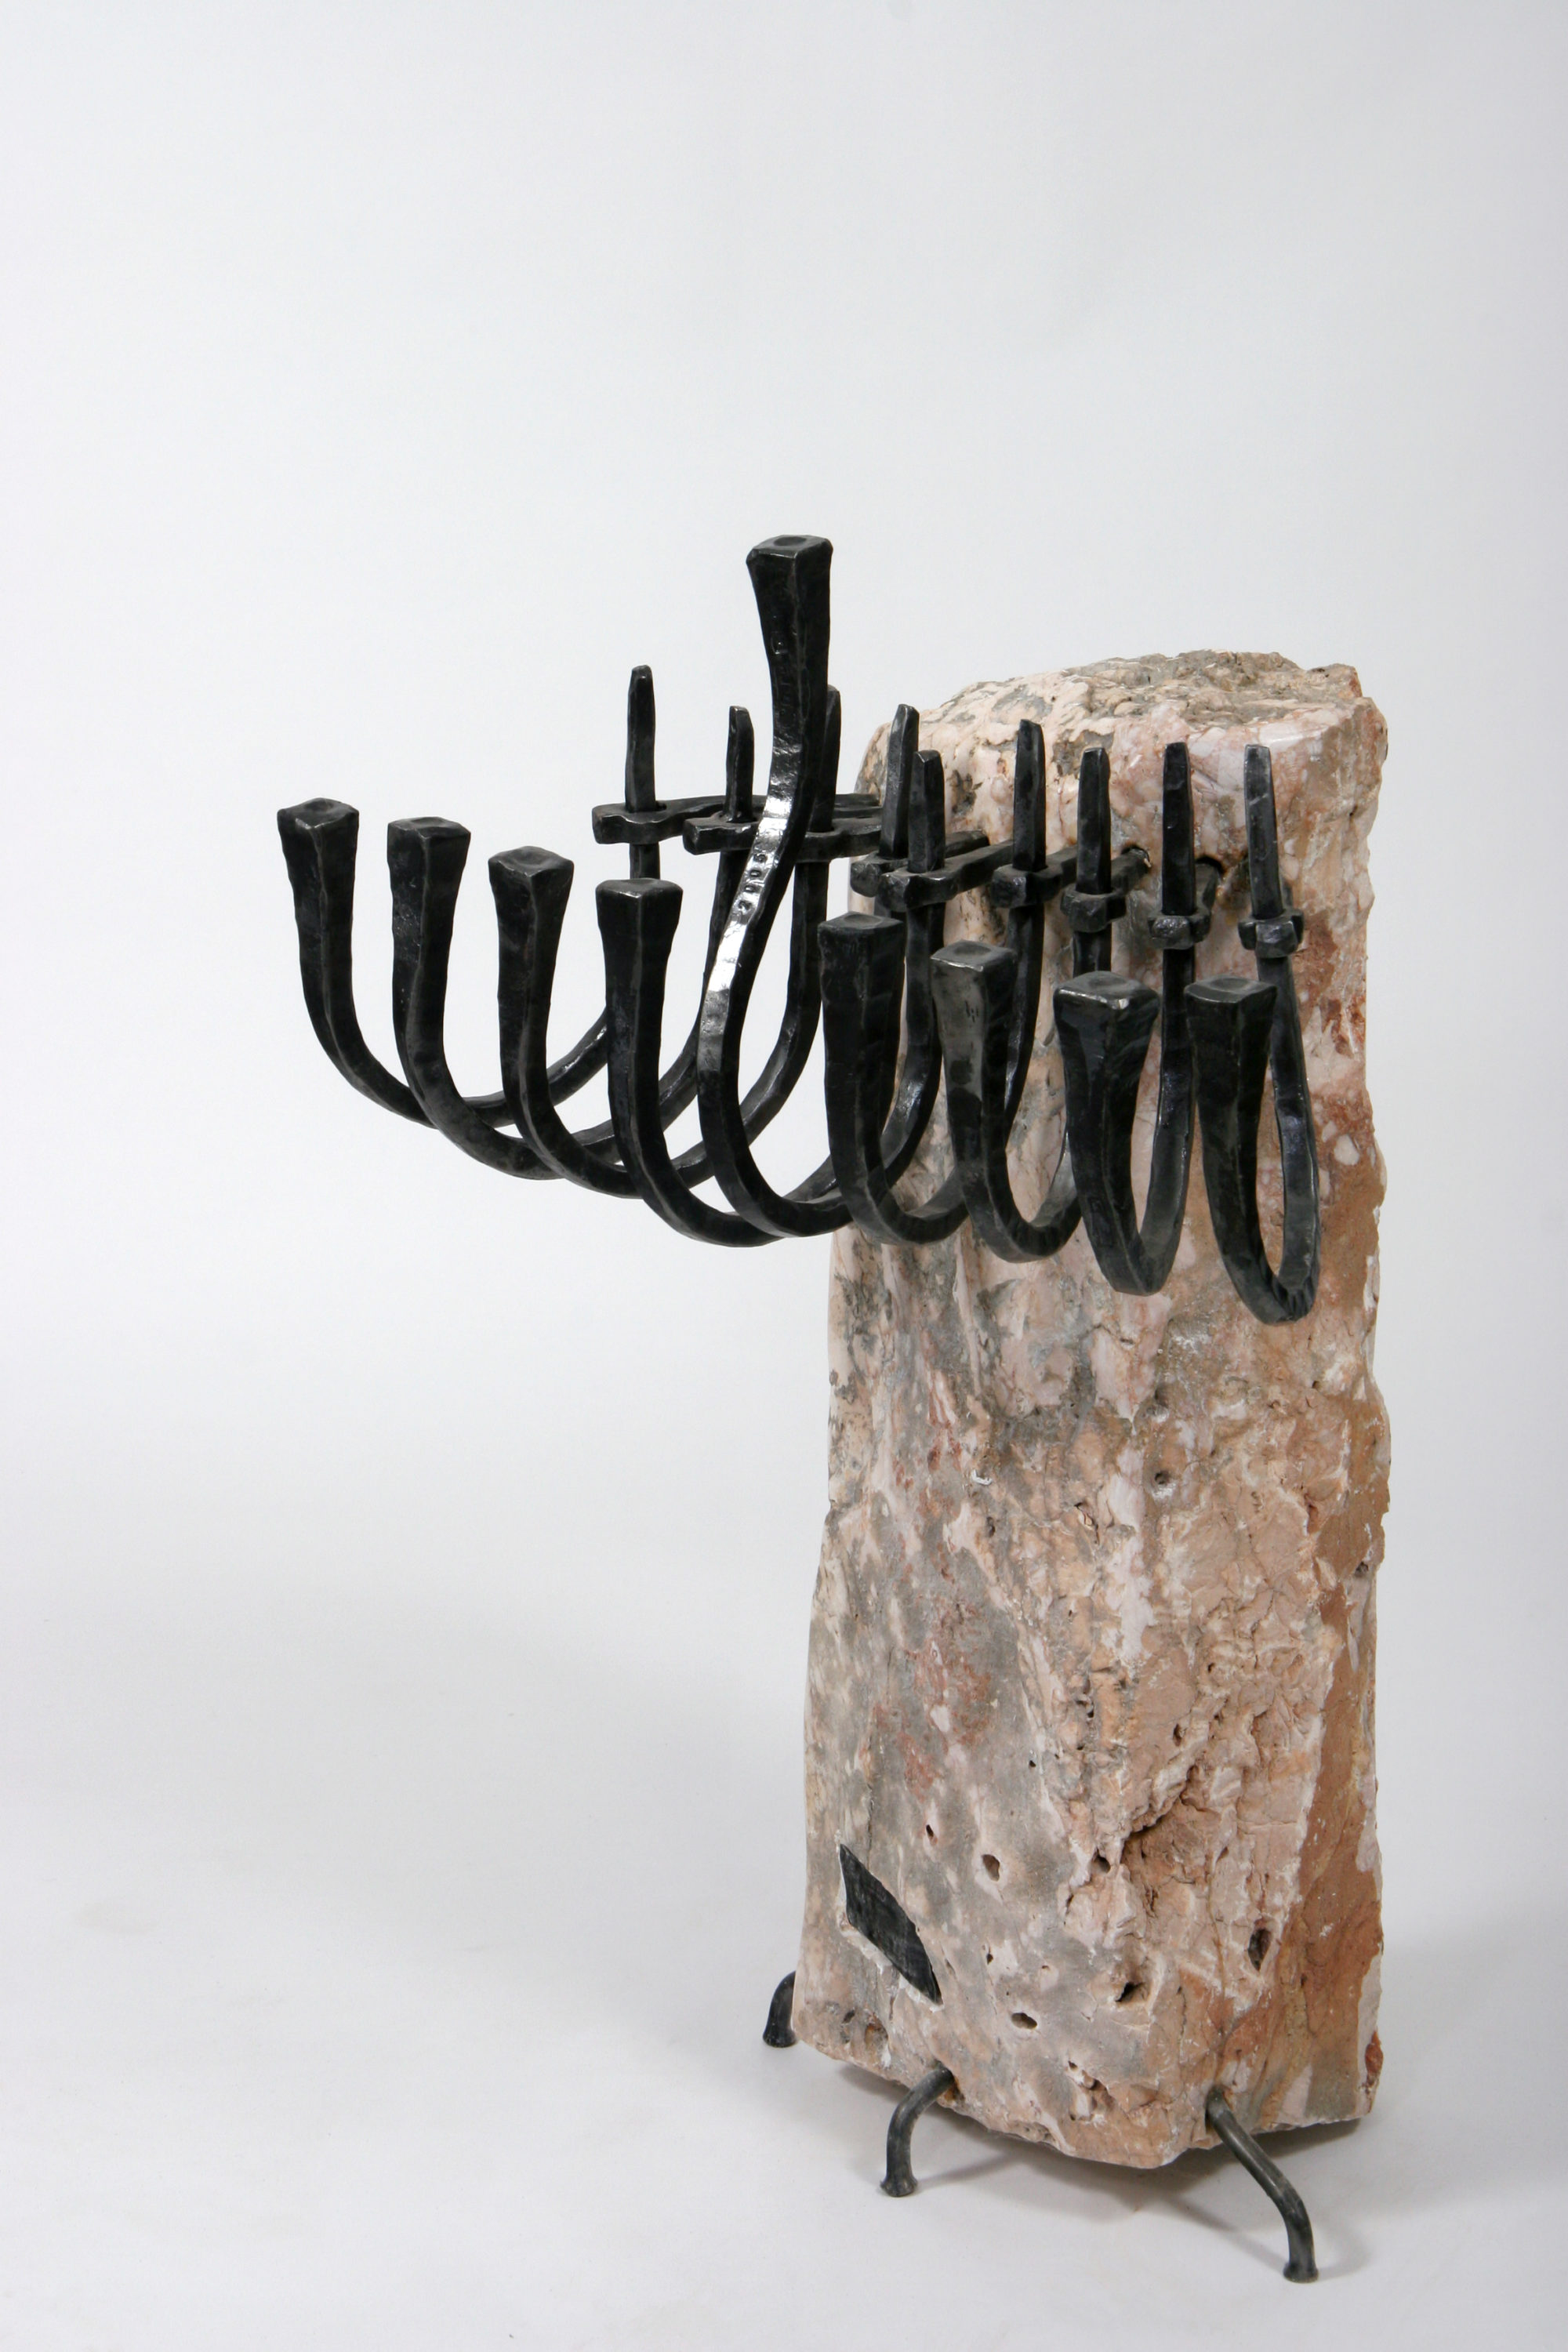 'Ribs' - ribs-shaped Hannukah Menorah of Iron & Jerusalem Stone